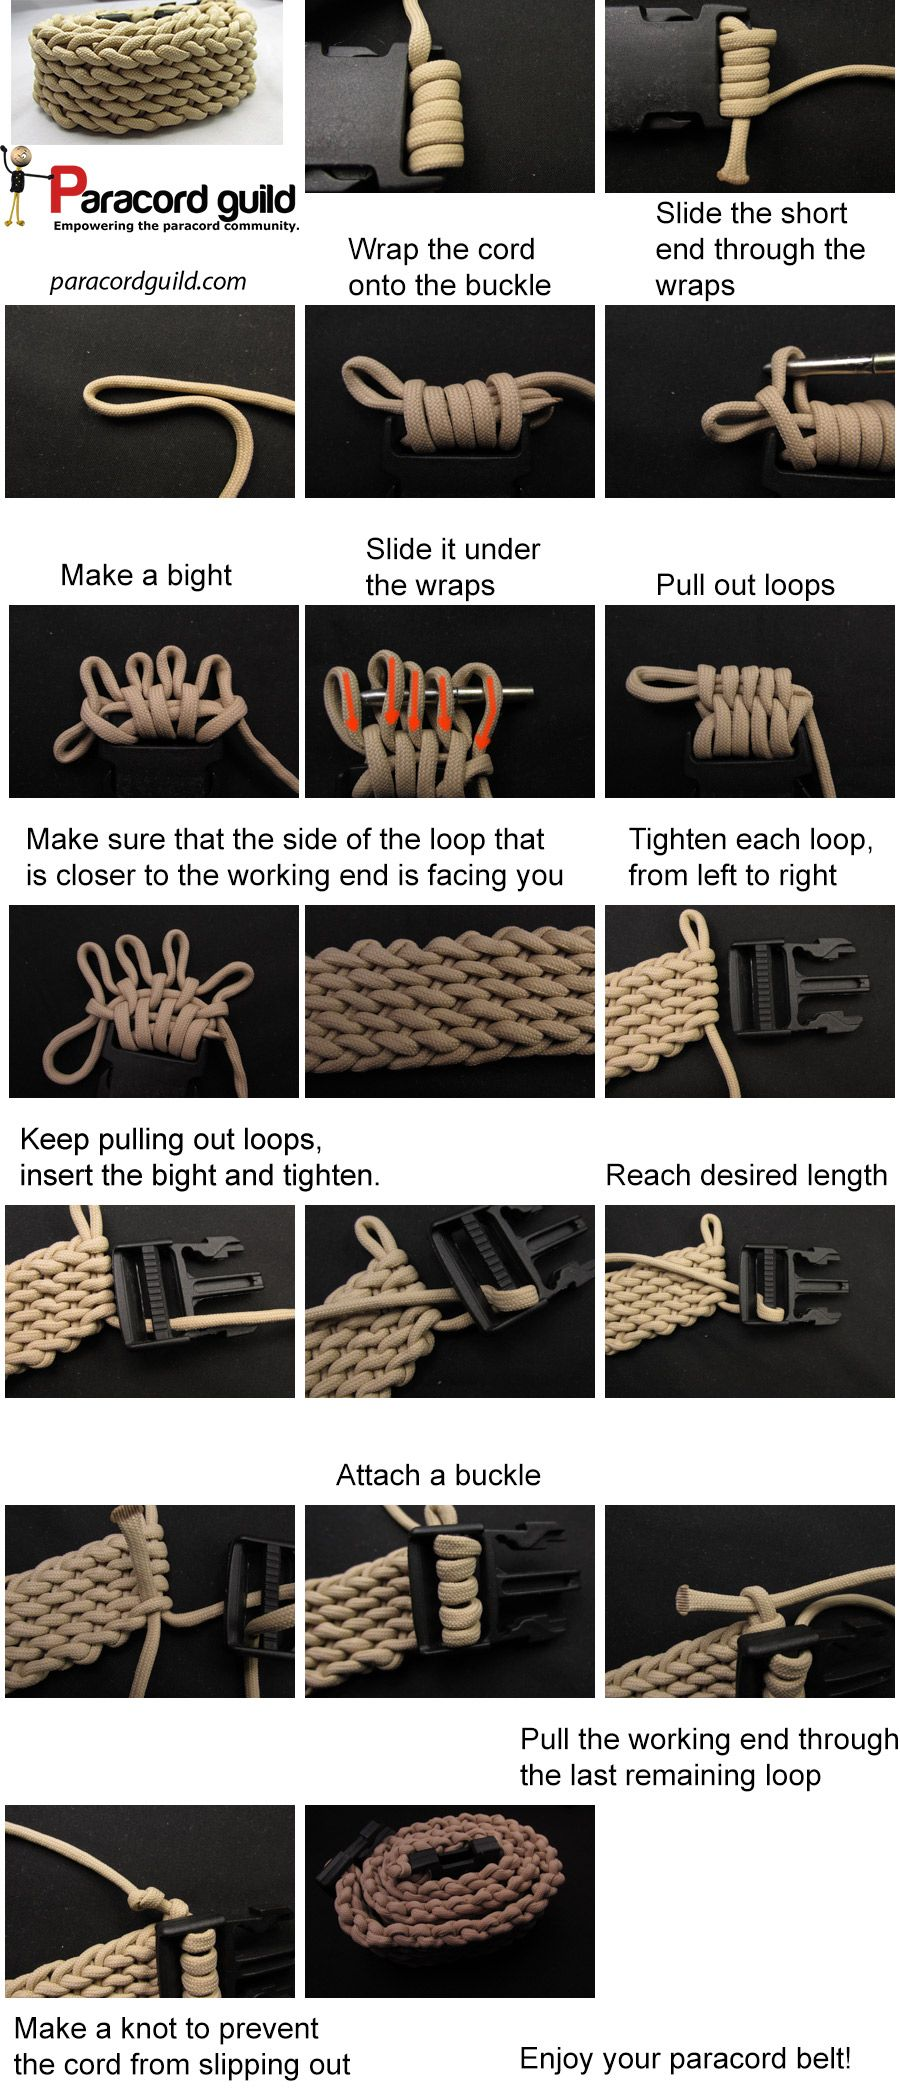 How to make a paracord belt - Paracord guild | Paracord ...